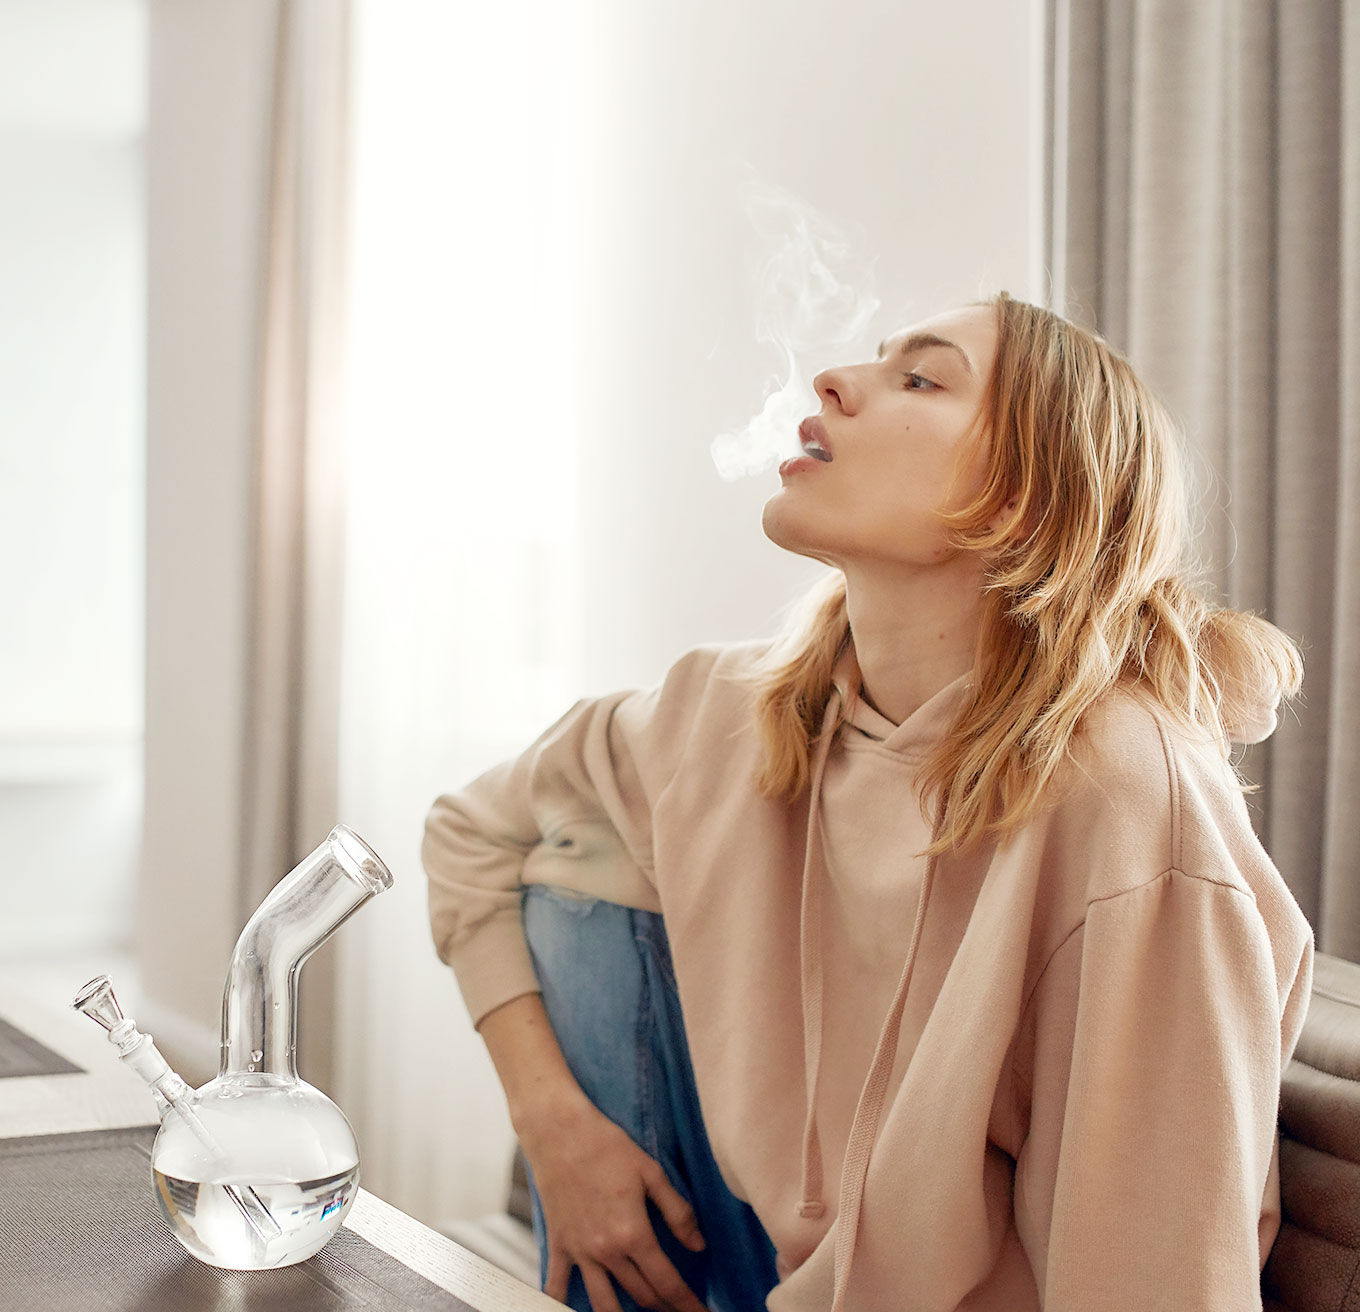 Woman Exhaling Cannabis Smoke